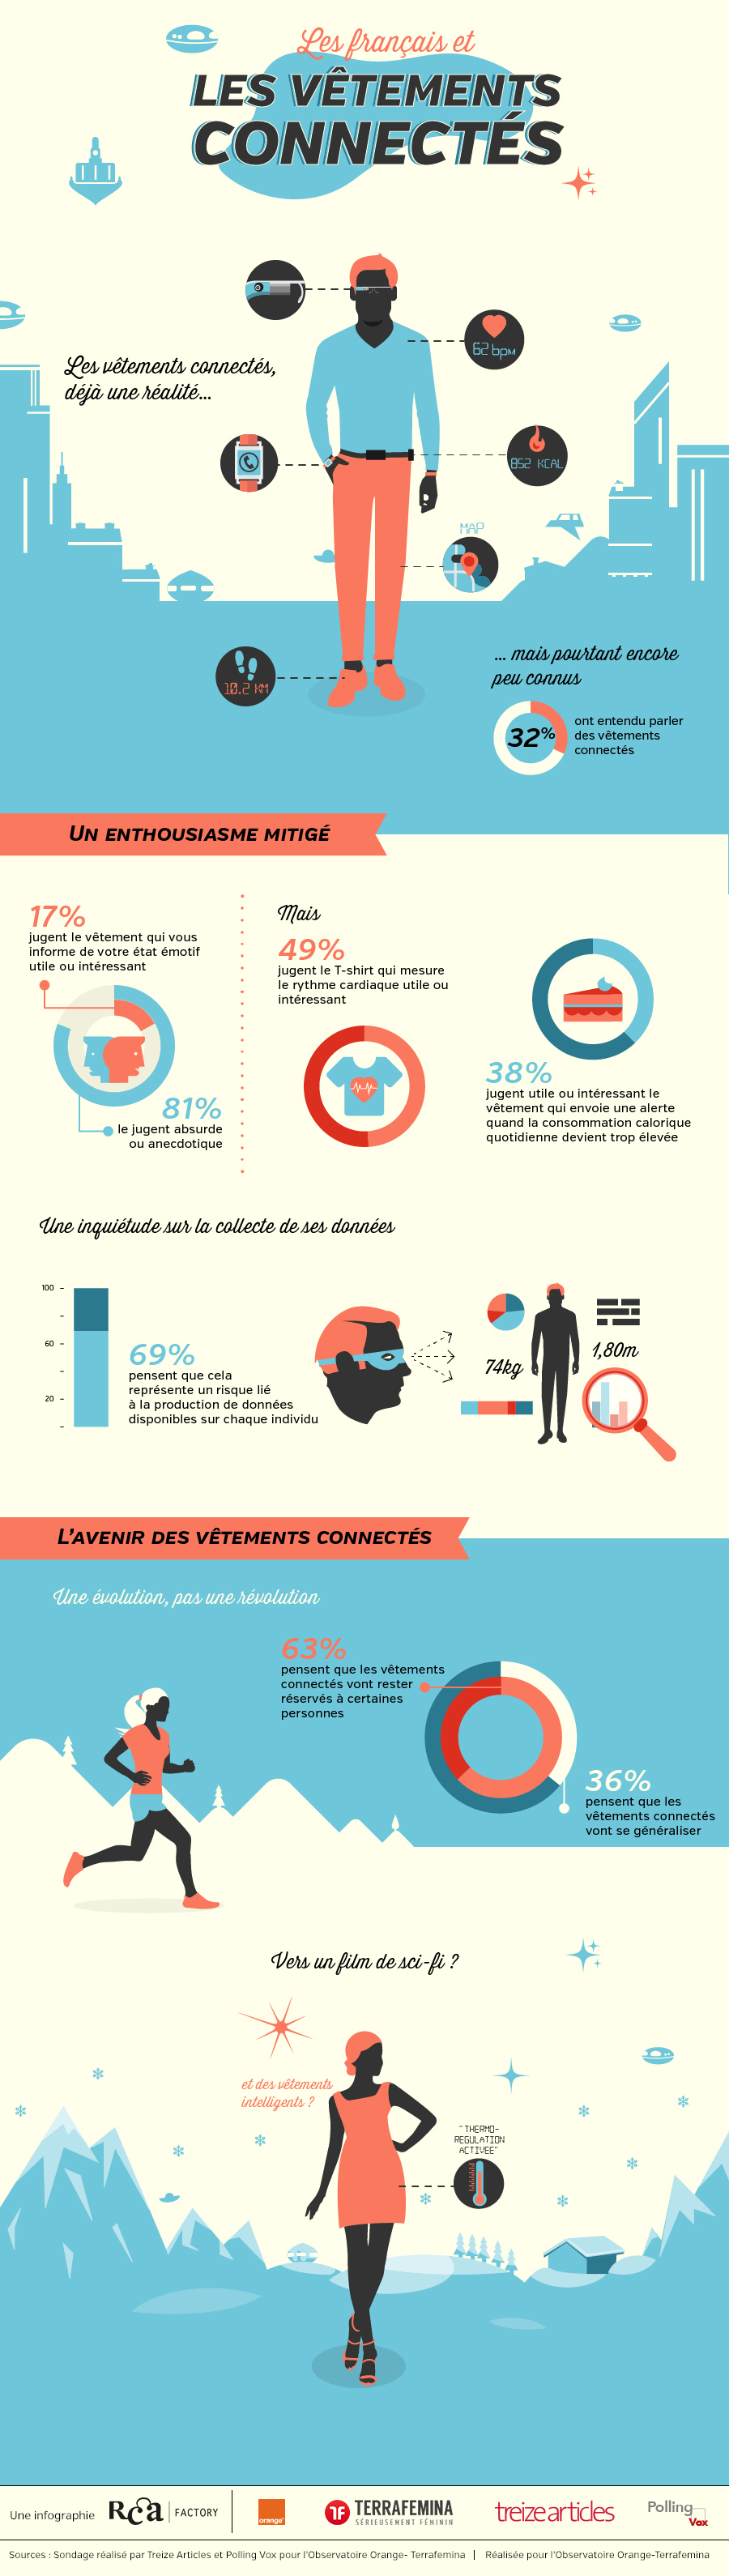 vetements_connectes_infographie_by_Cedric_Audinot